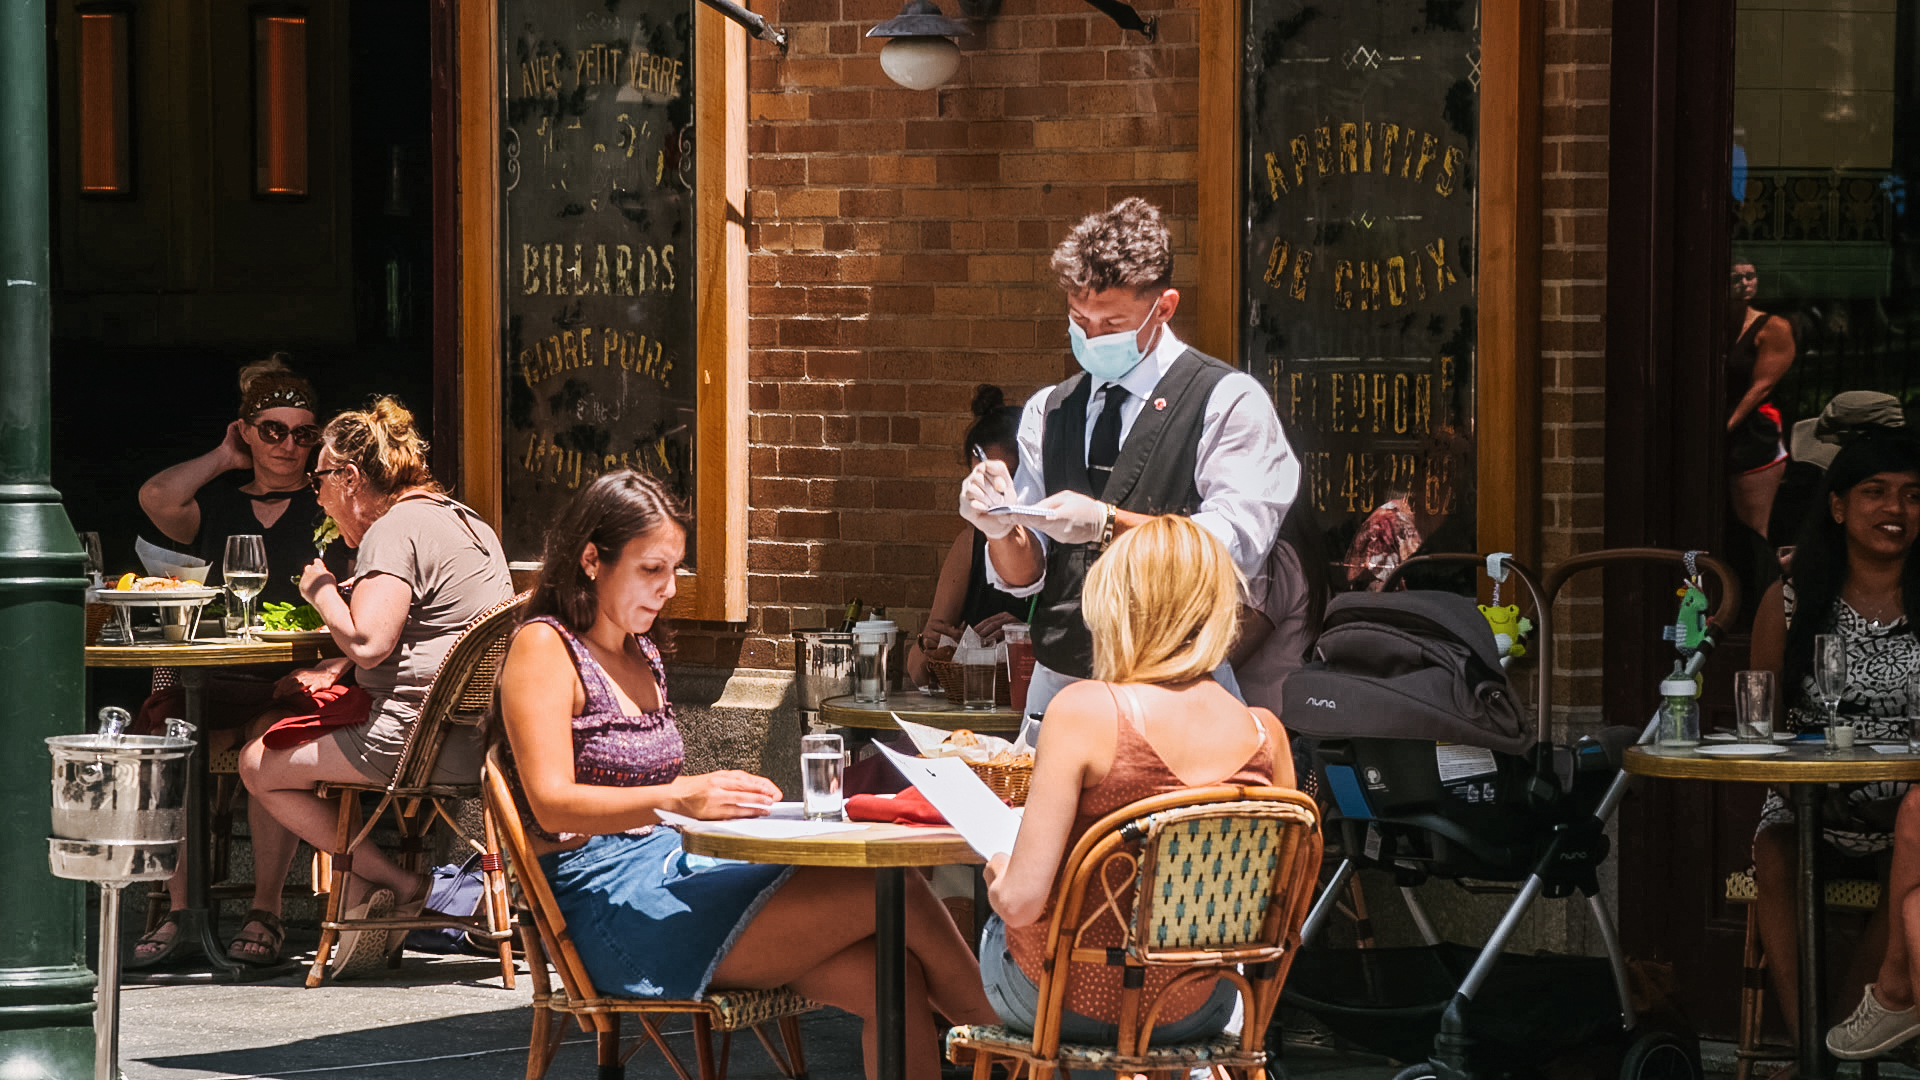 Outdoor dining at a restaurant in Philadelphia during the Coronavirus pandemic